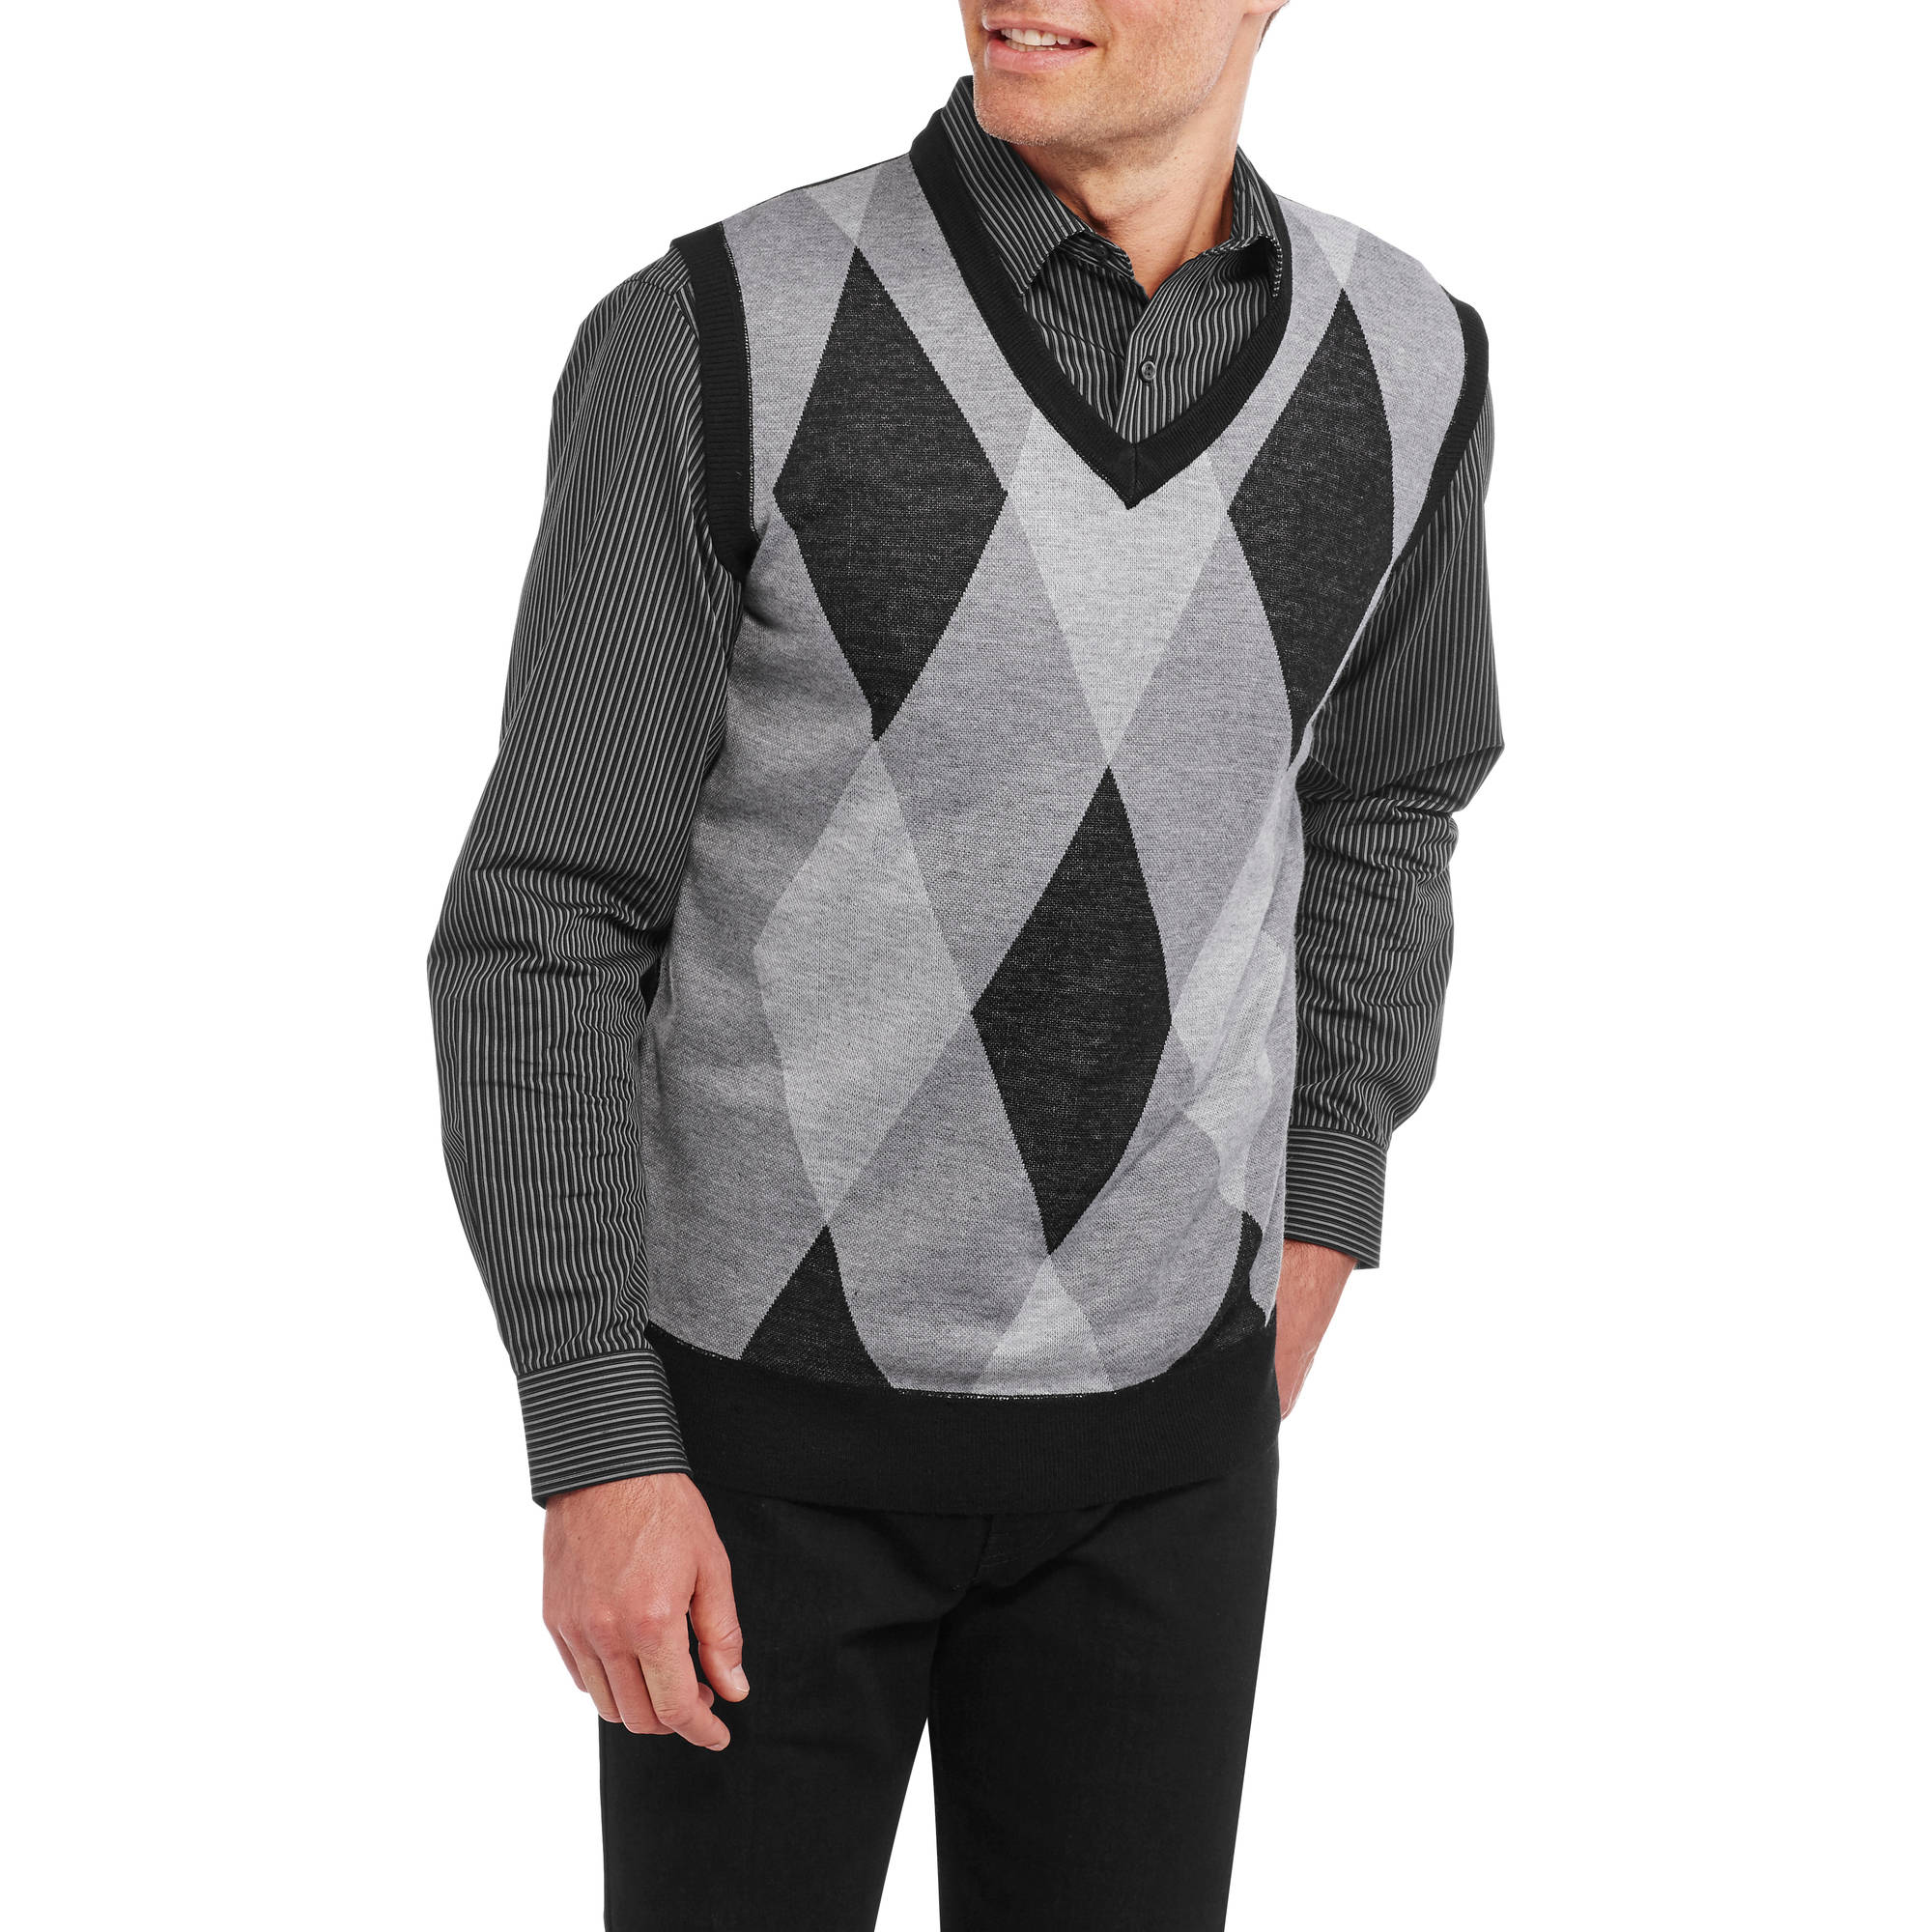 Sahara Club Men's Argyle Jacquard Sweater Vest